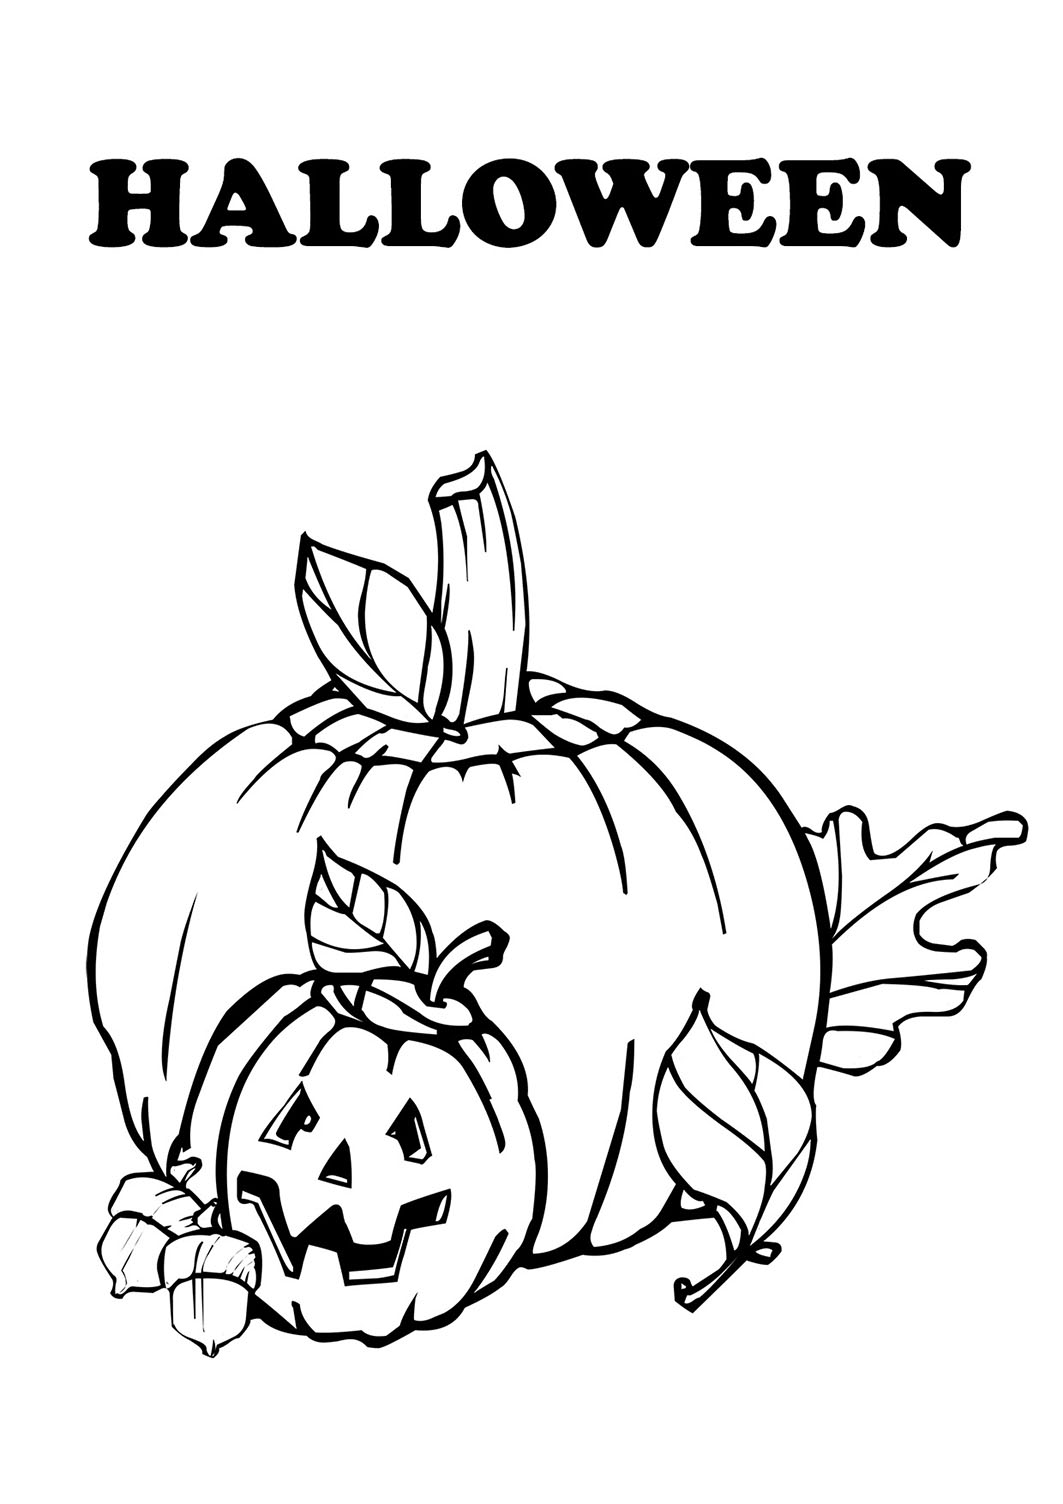 coloring halloween halloween coloring pages june 2012 coloring halloween